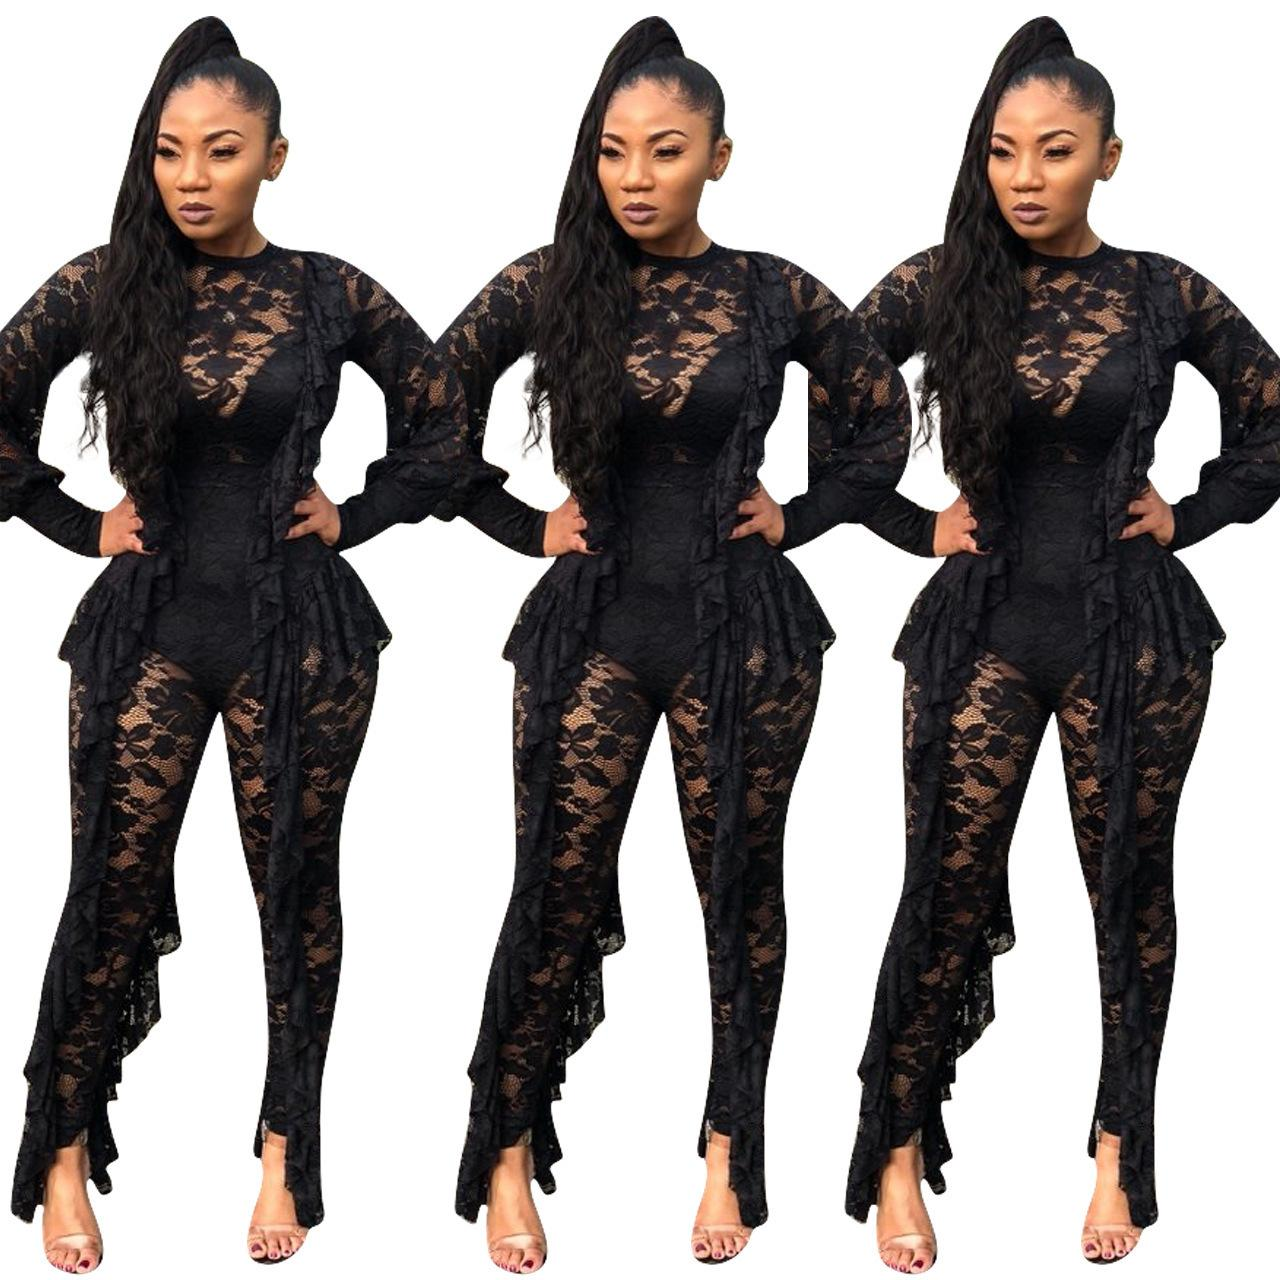 bee3aba52 Y8042 Europe and America nightclub women s 2019 fashion explosion models  lace sexy perspective tassel jumpsuit